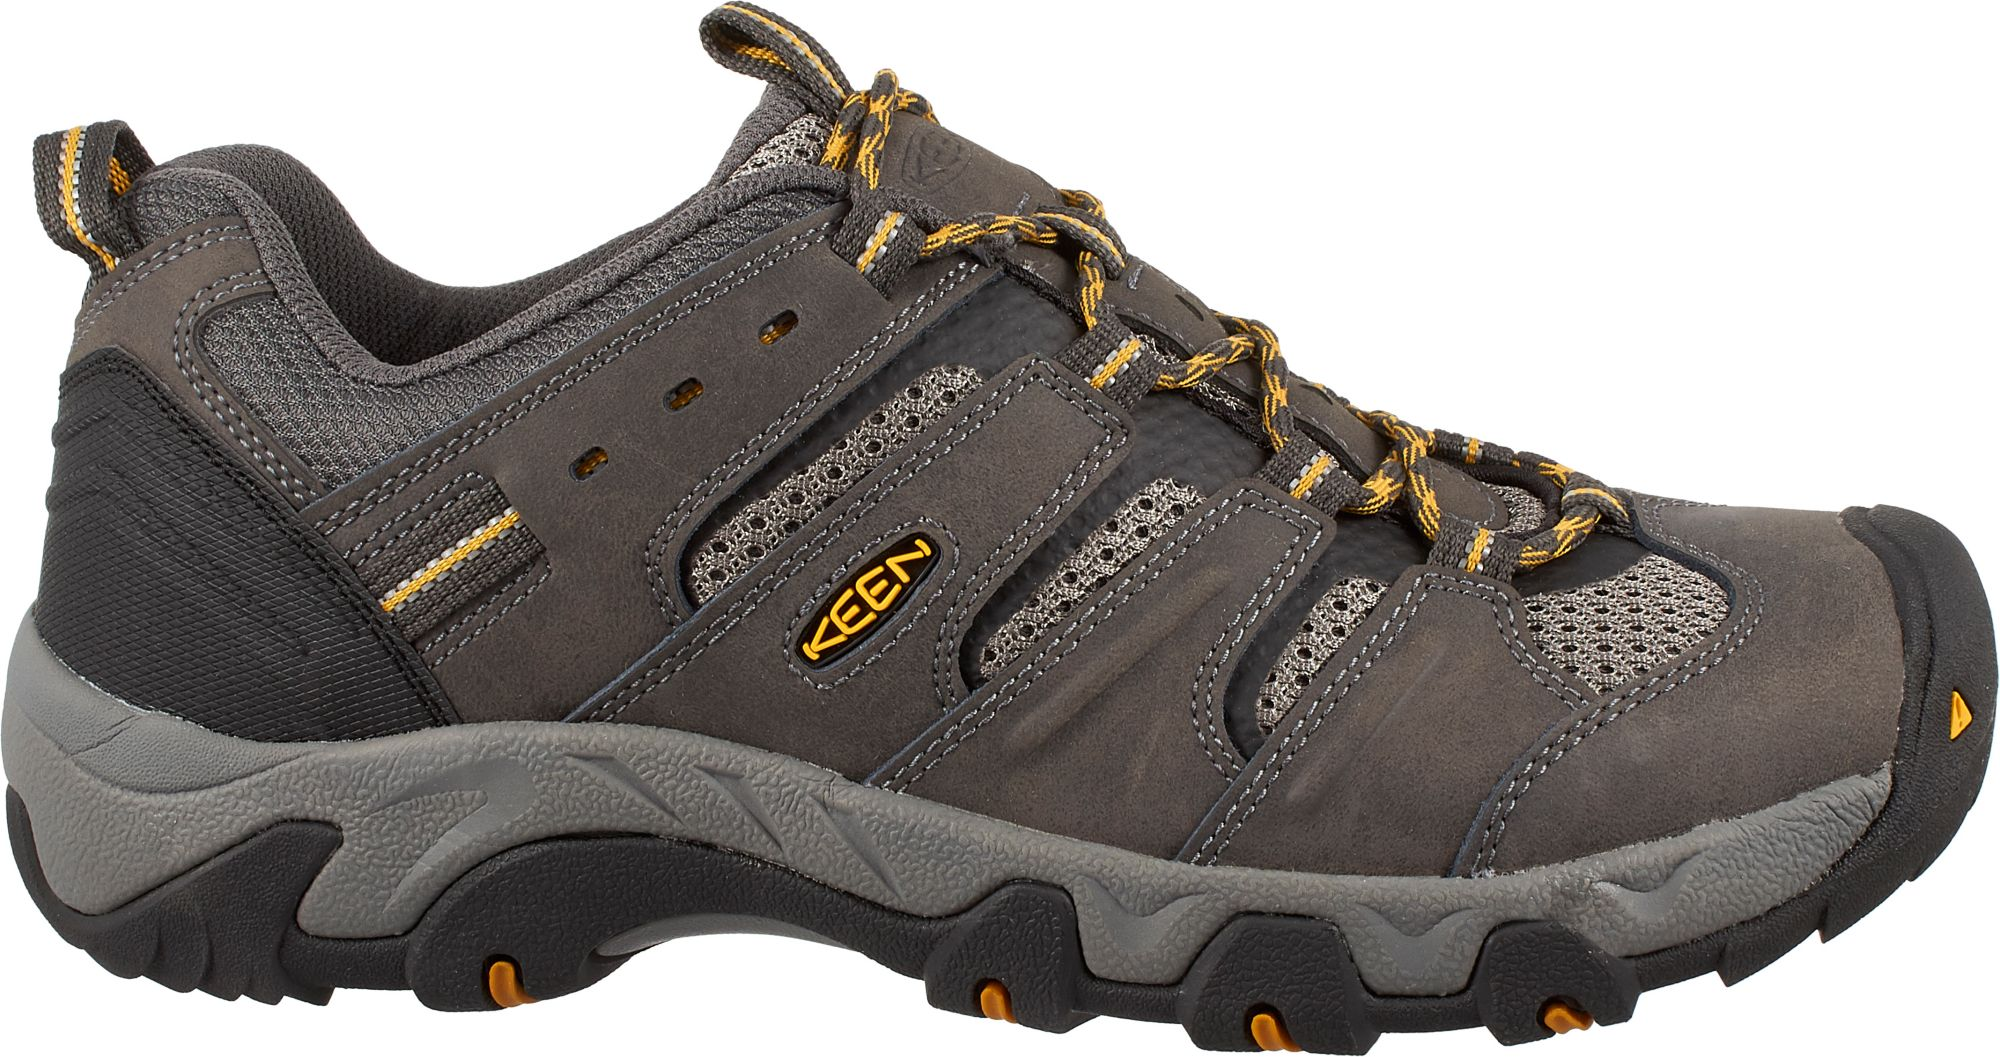 Men's Koven Hiking Shoe